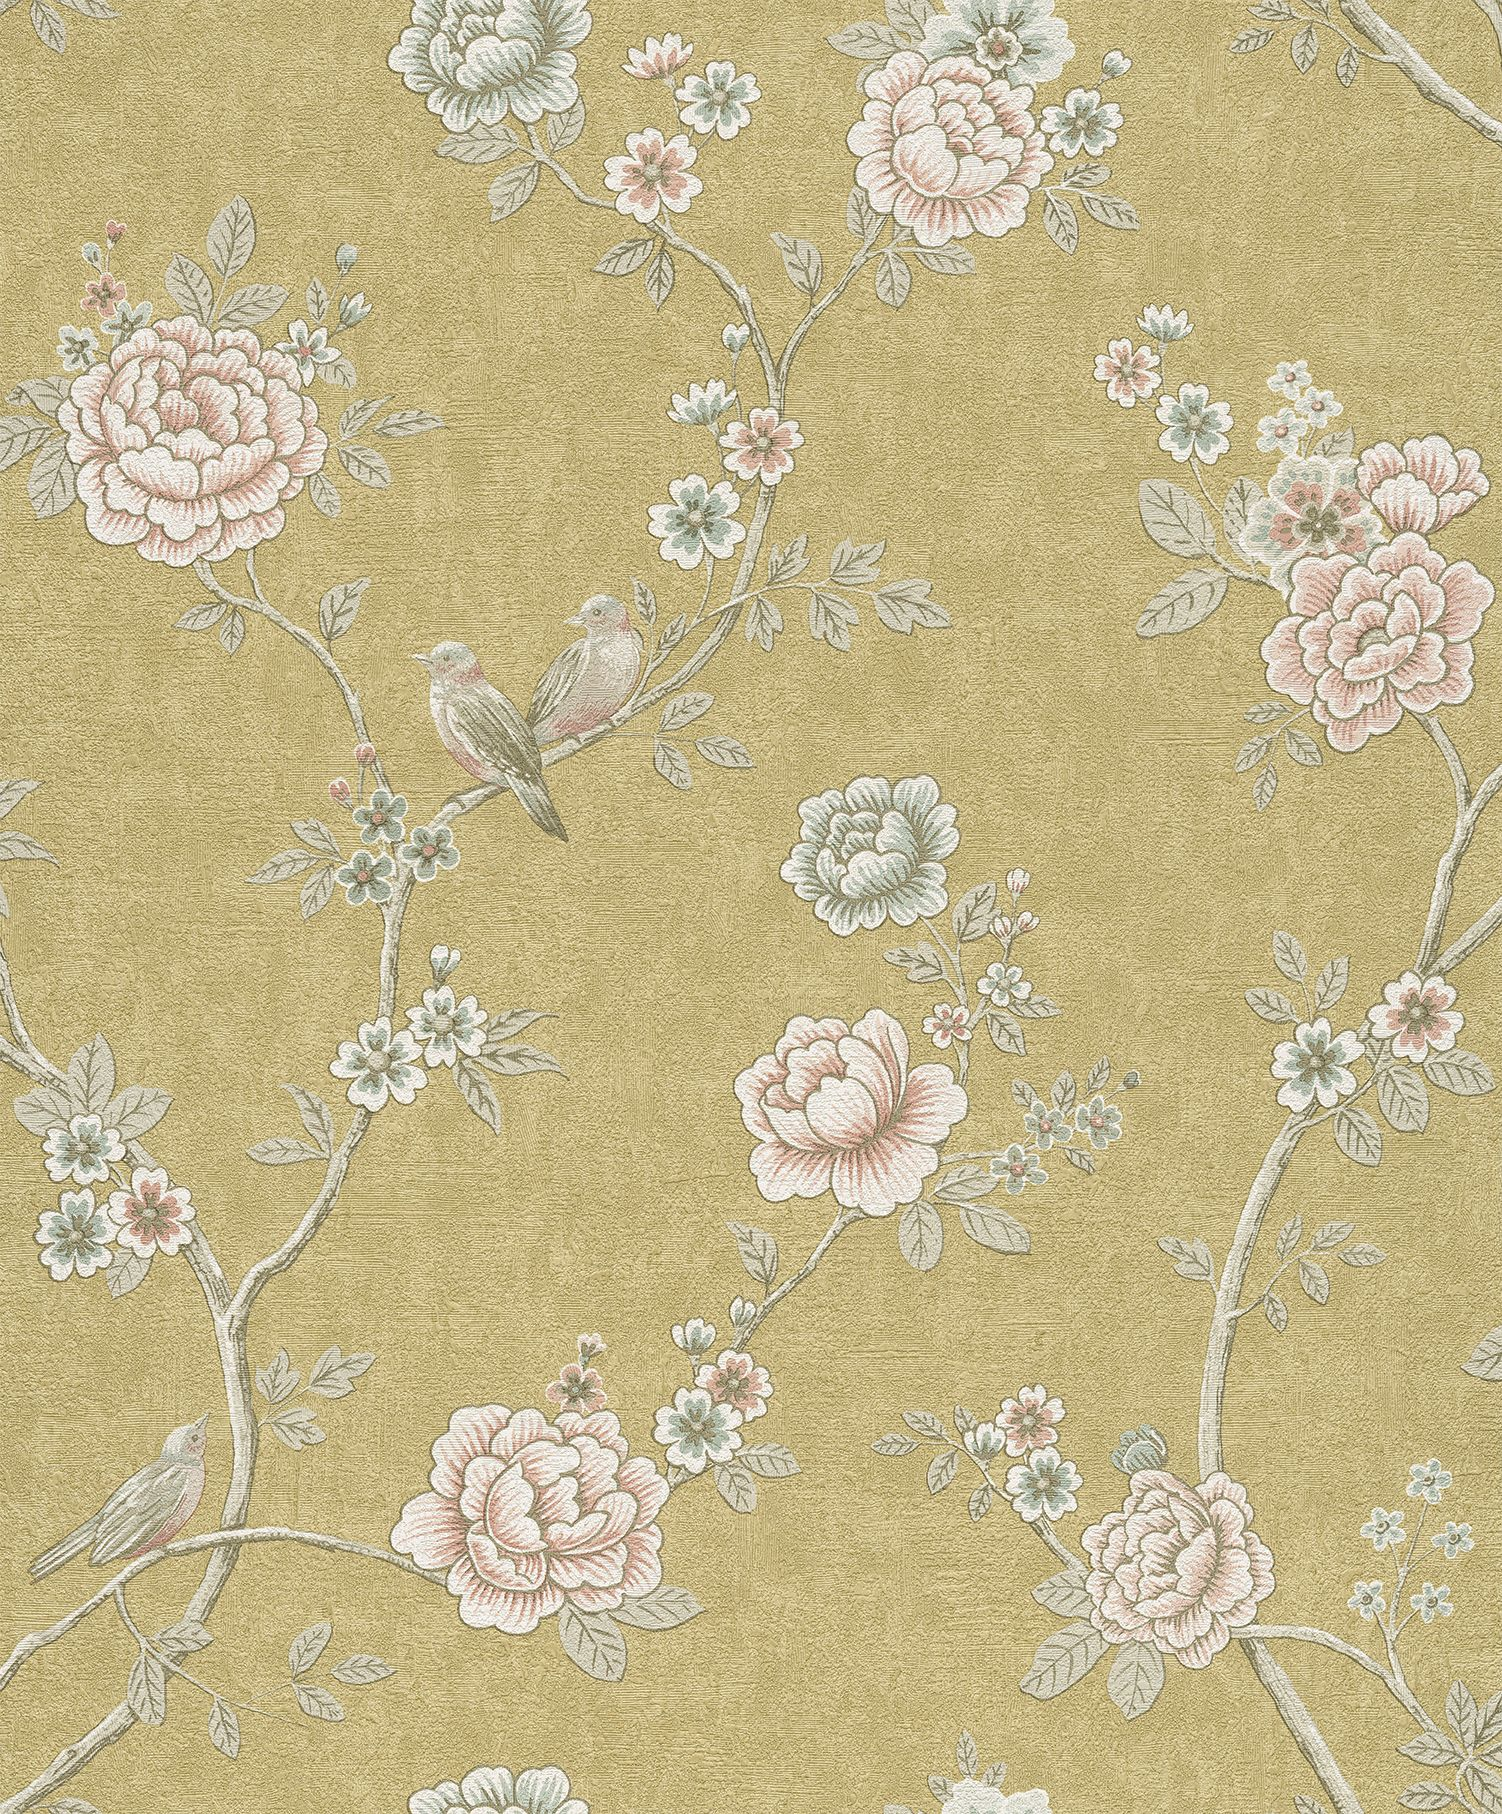 Discover Our Most Beautiful Chinoiserie Wallpaper Available In